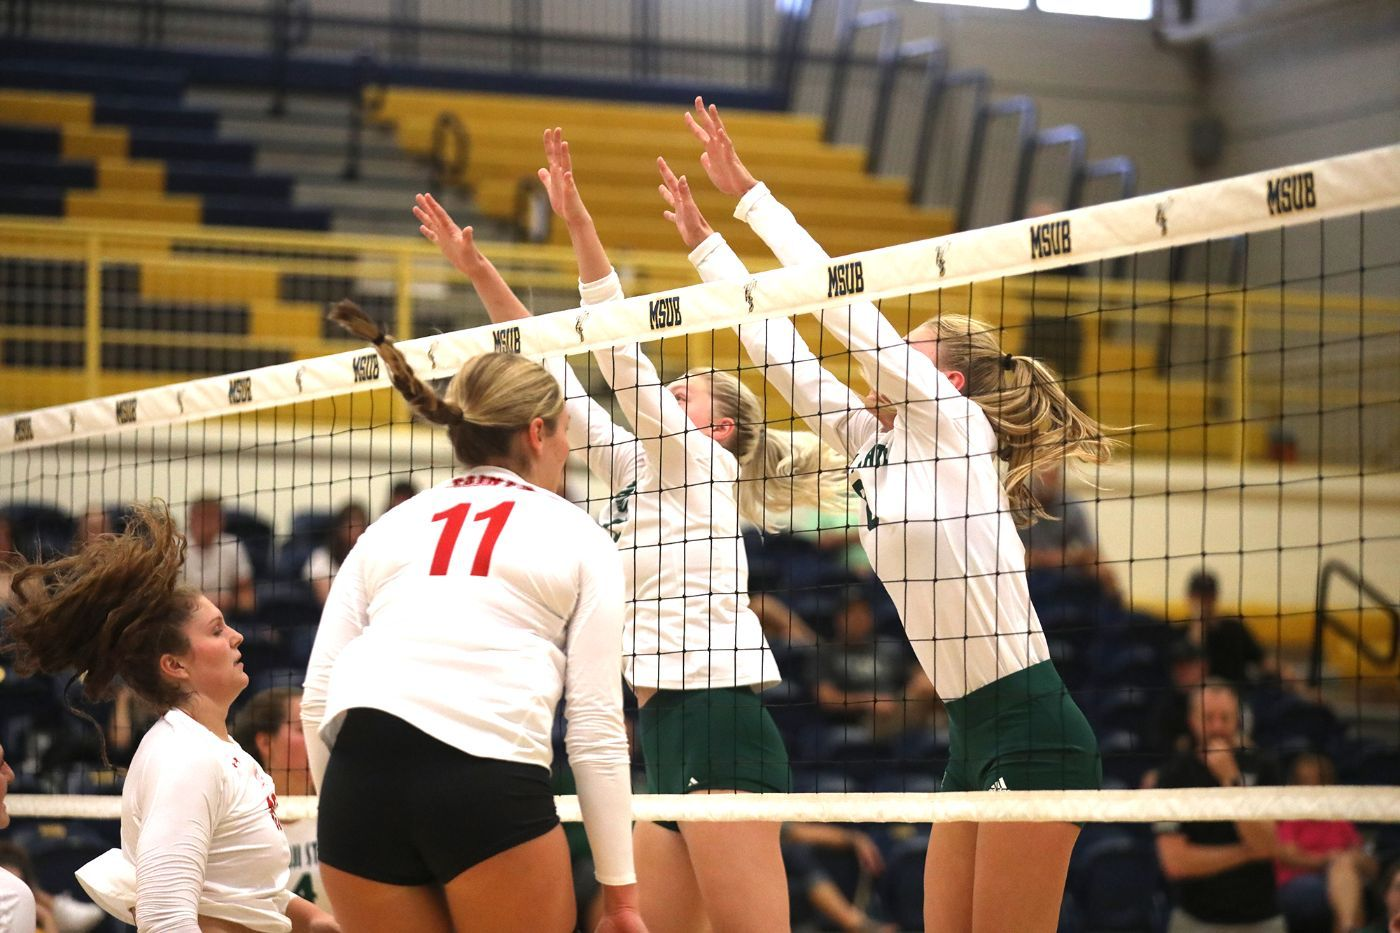 Beavers fall to Cedarville and Northern Michigan to conclude UIndy Invite